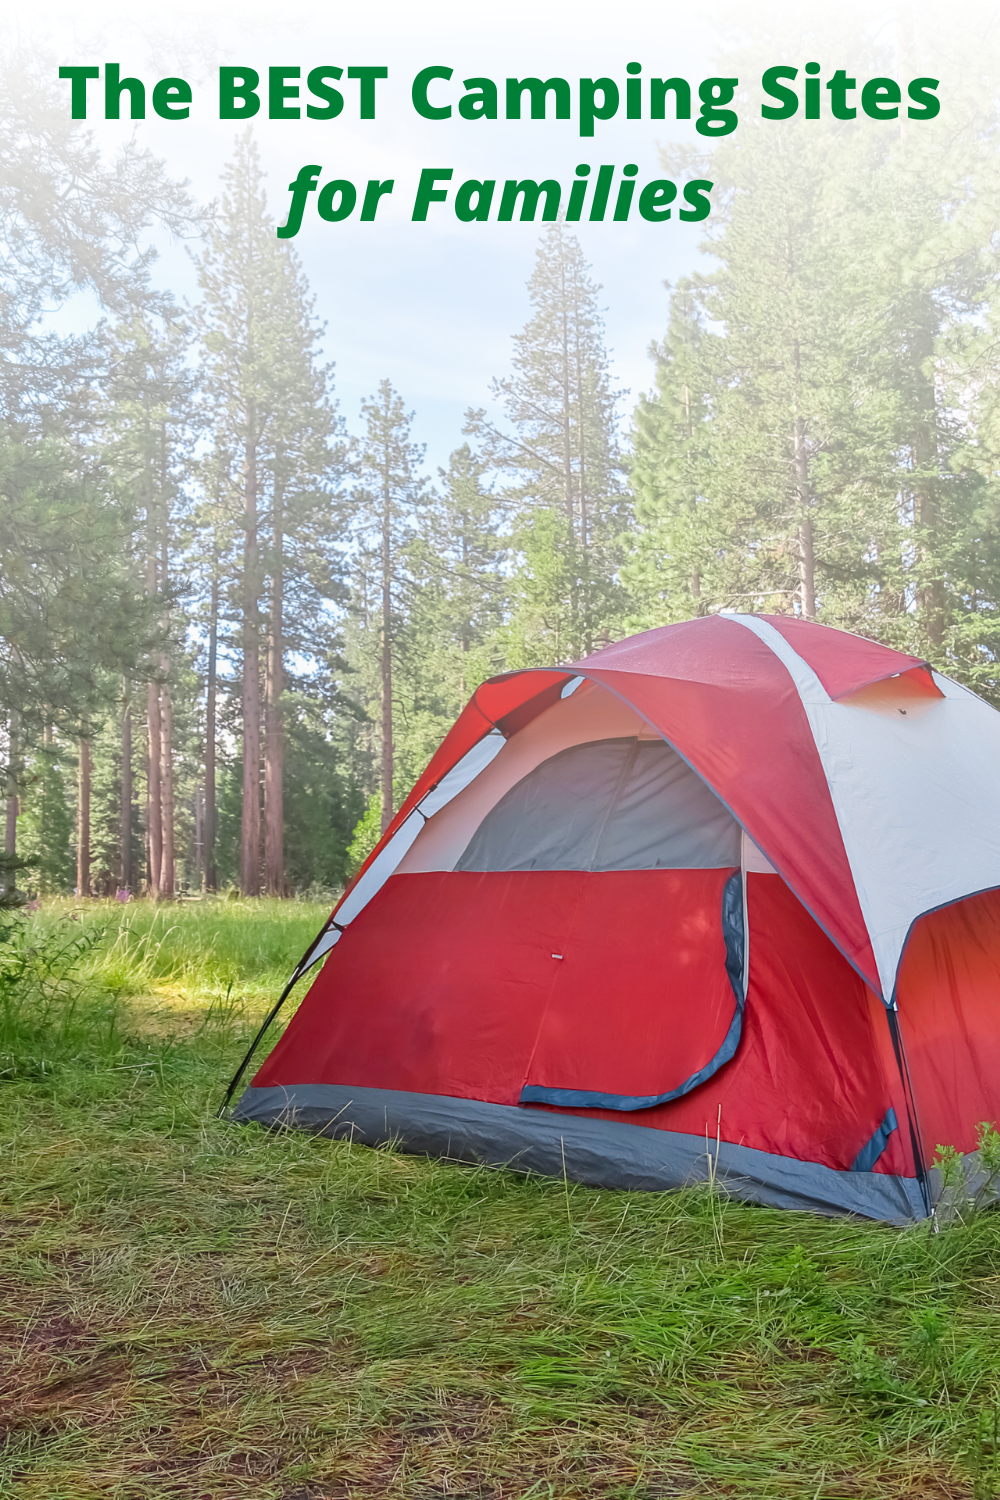 pitched tent with the text Best Camping Sites for Families